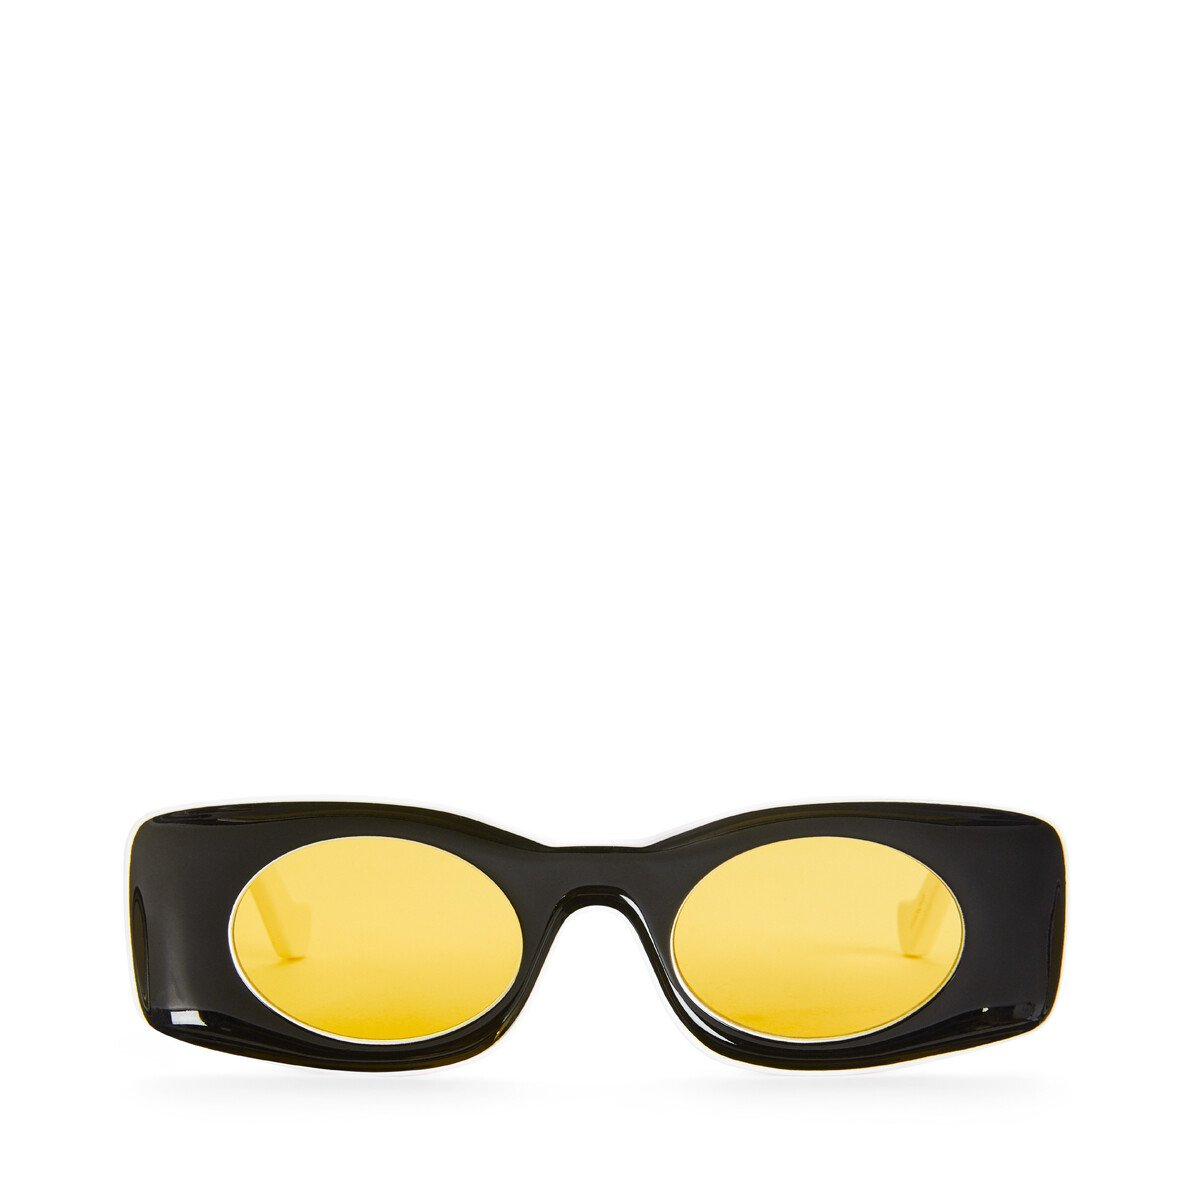 LOEWE Paula's Ibiza Original Sunglasses In Acetate 黑色/白色 front